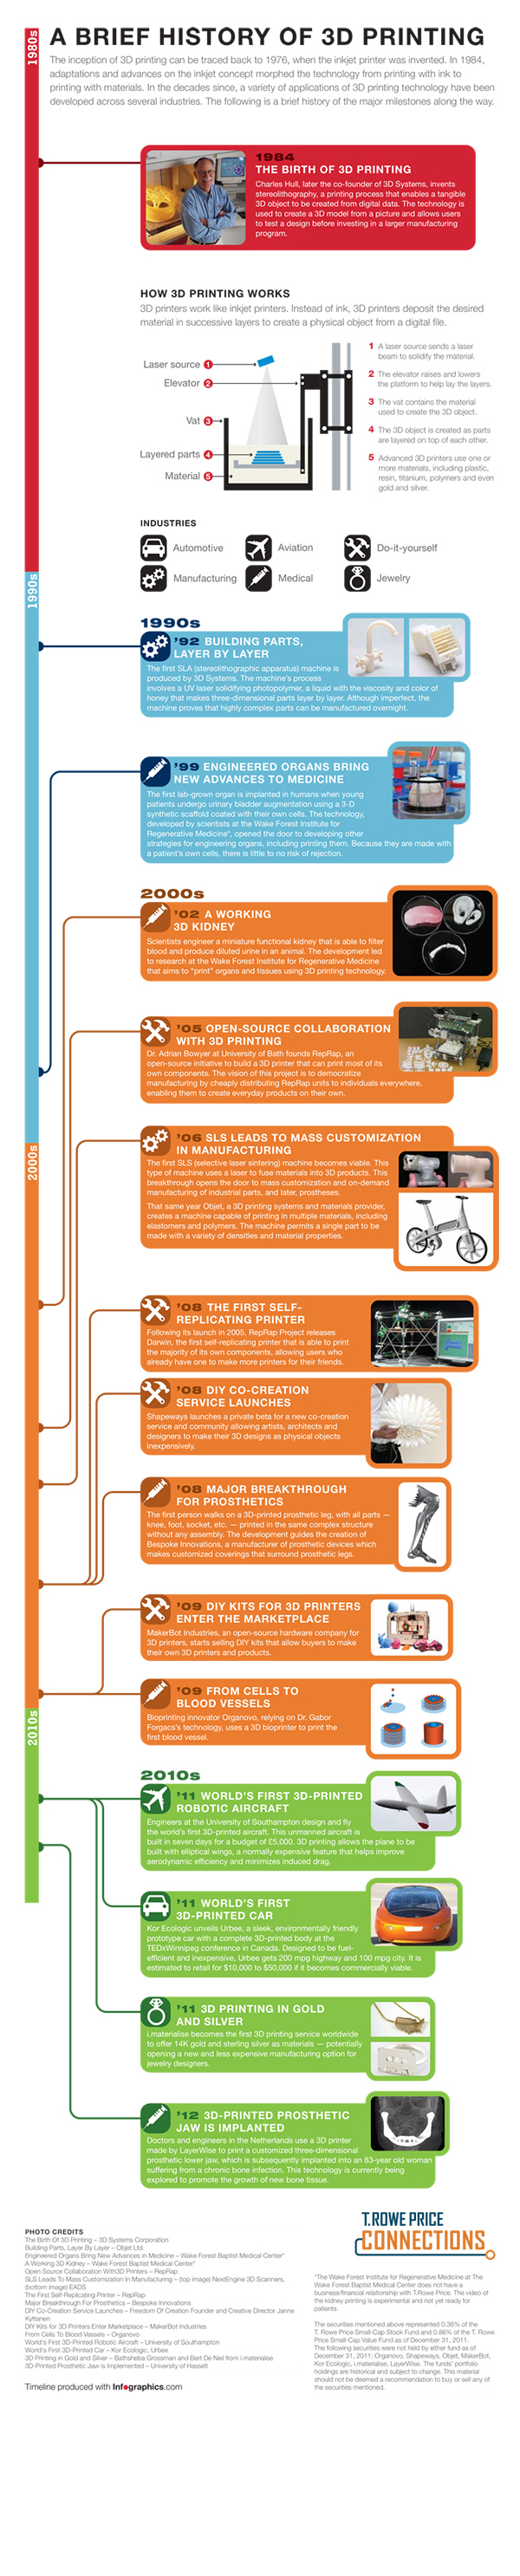 3D printing, history, infographic, stl